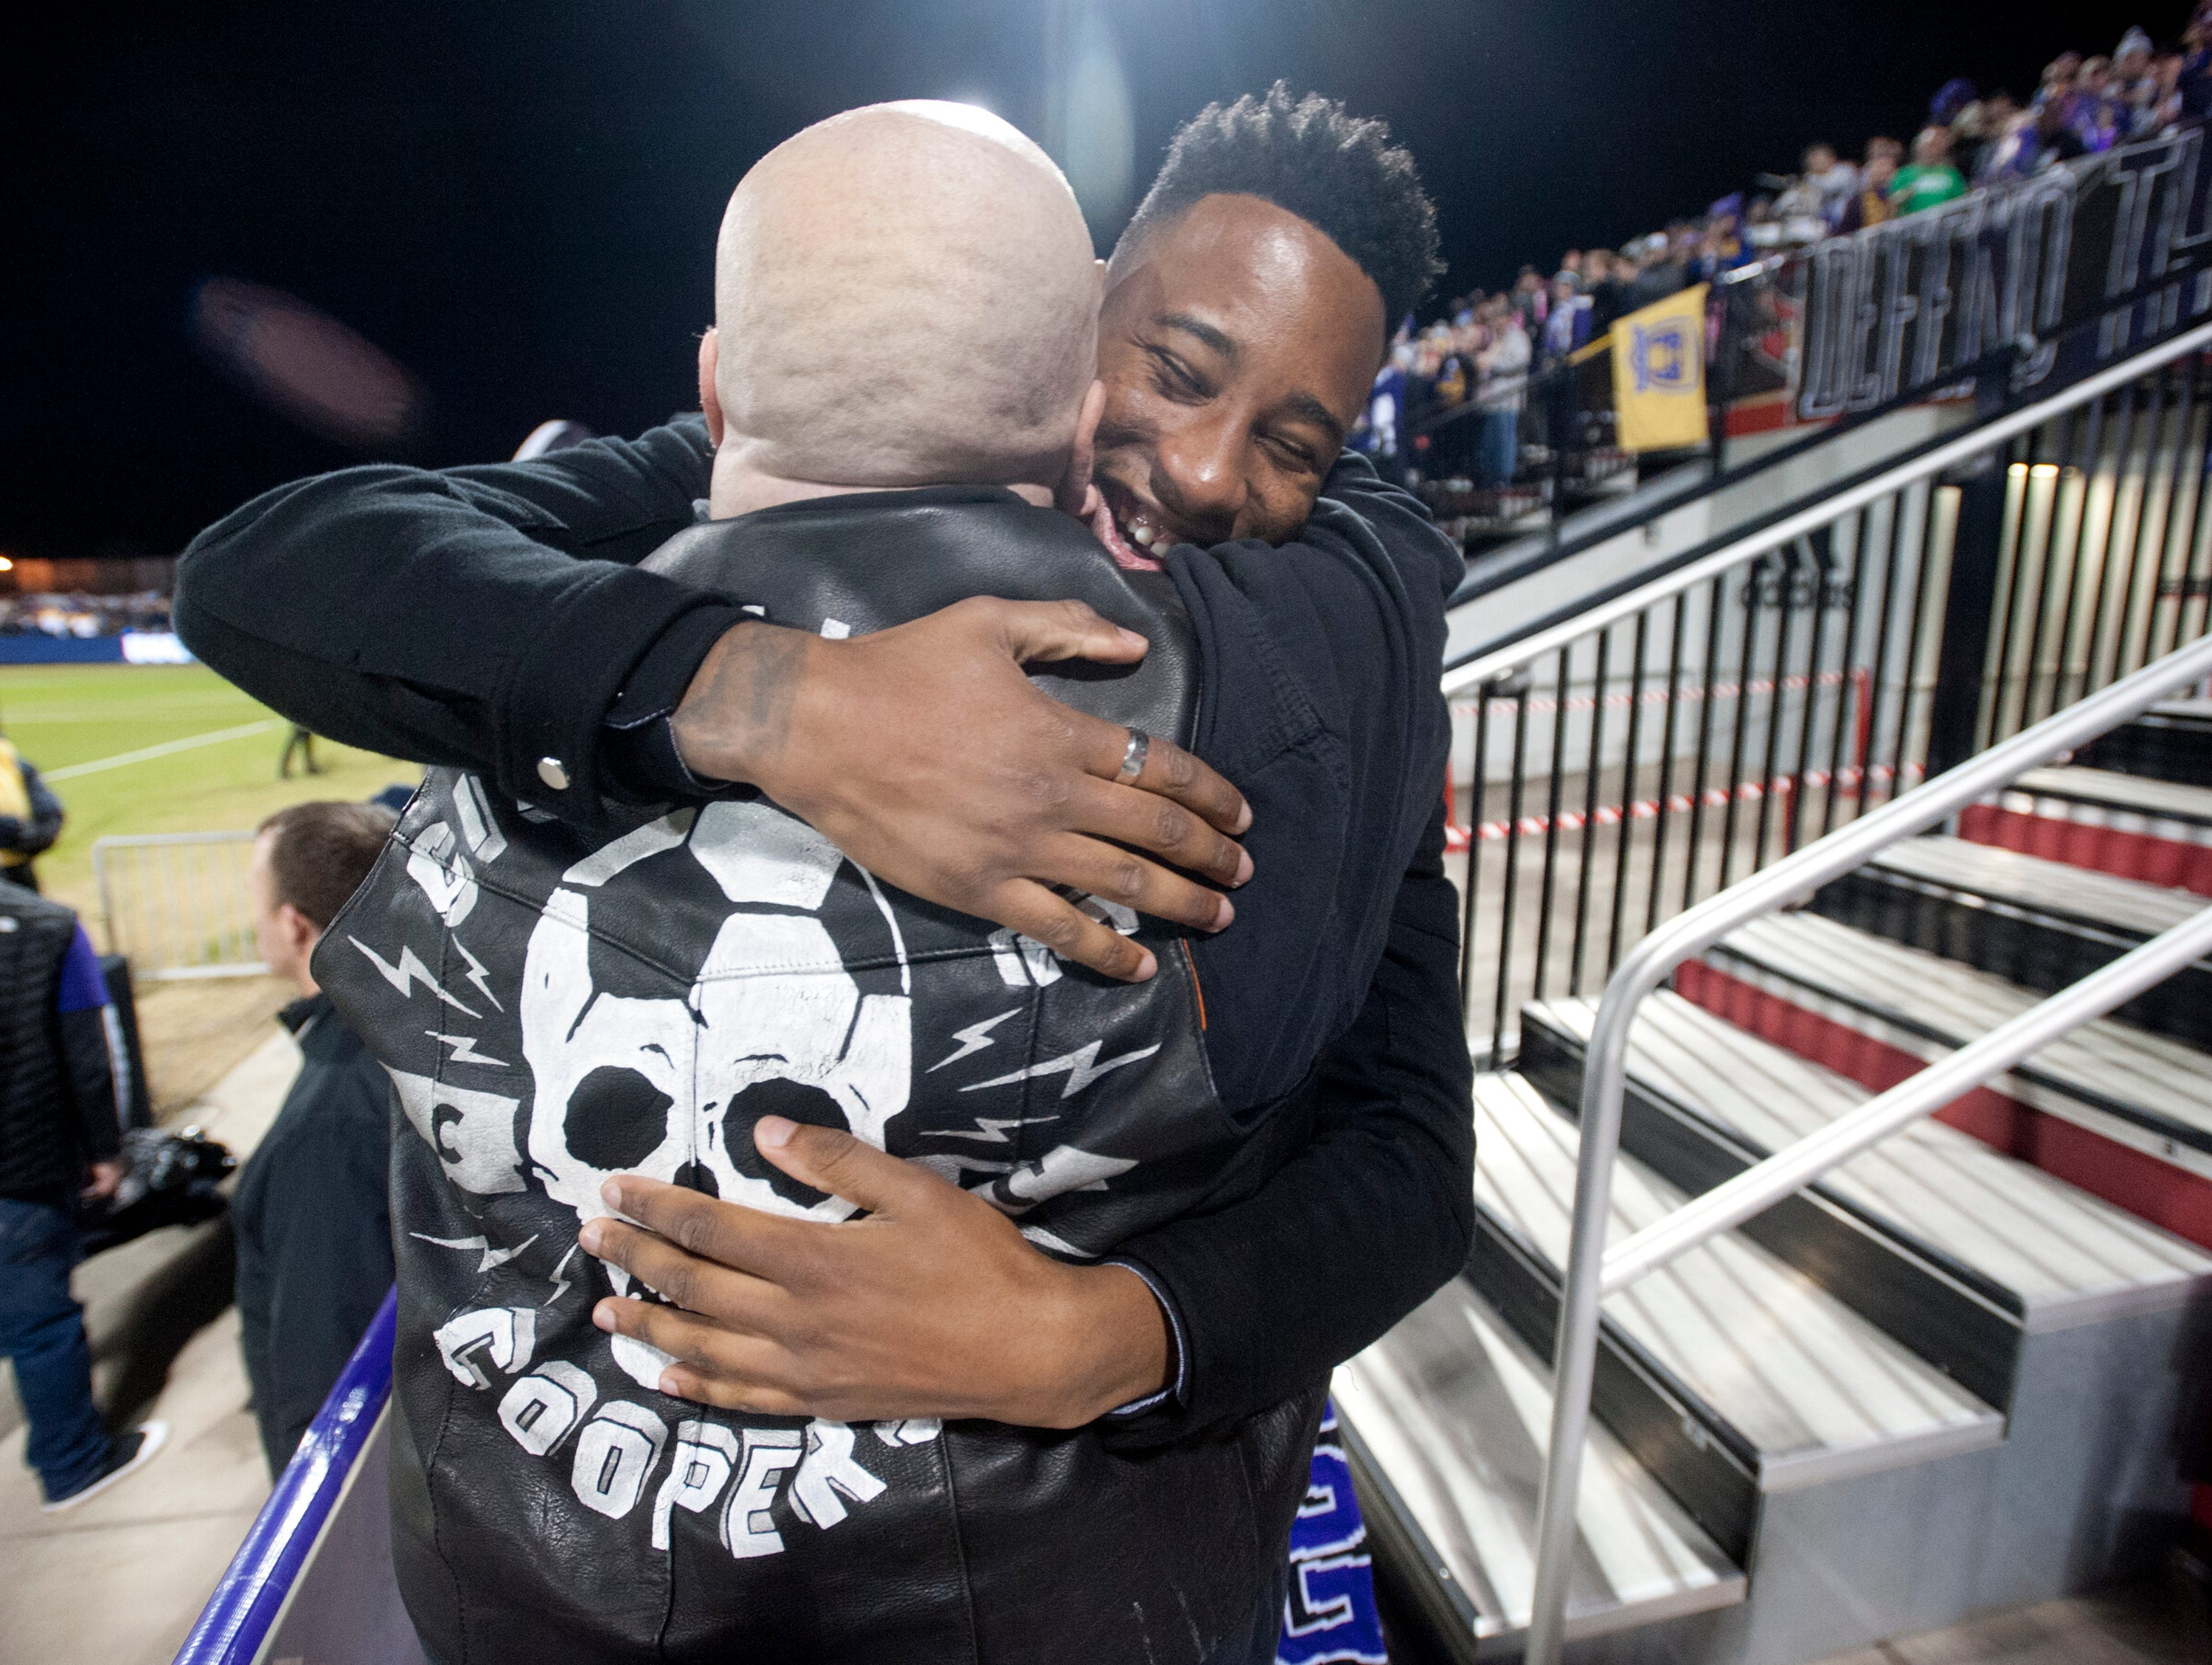 Mark Anthony Kaye of the Los Angeles FC, right, hugs Louisville Coopers' Joe Valla after Valla sang the National Anthen before the start of the  Louisville City FC-Phoenix Rising FC championship game for the 2018 USL Cup.November 08, 2018